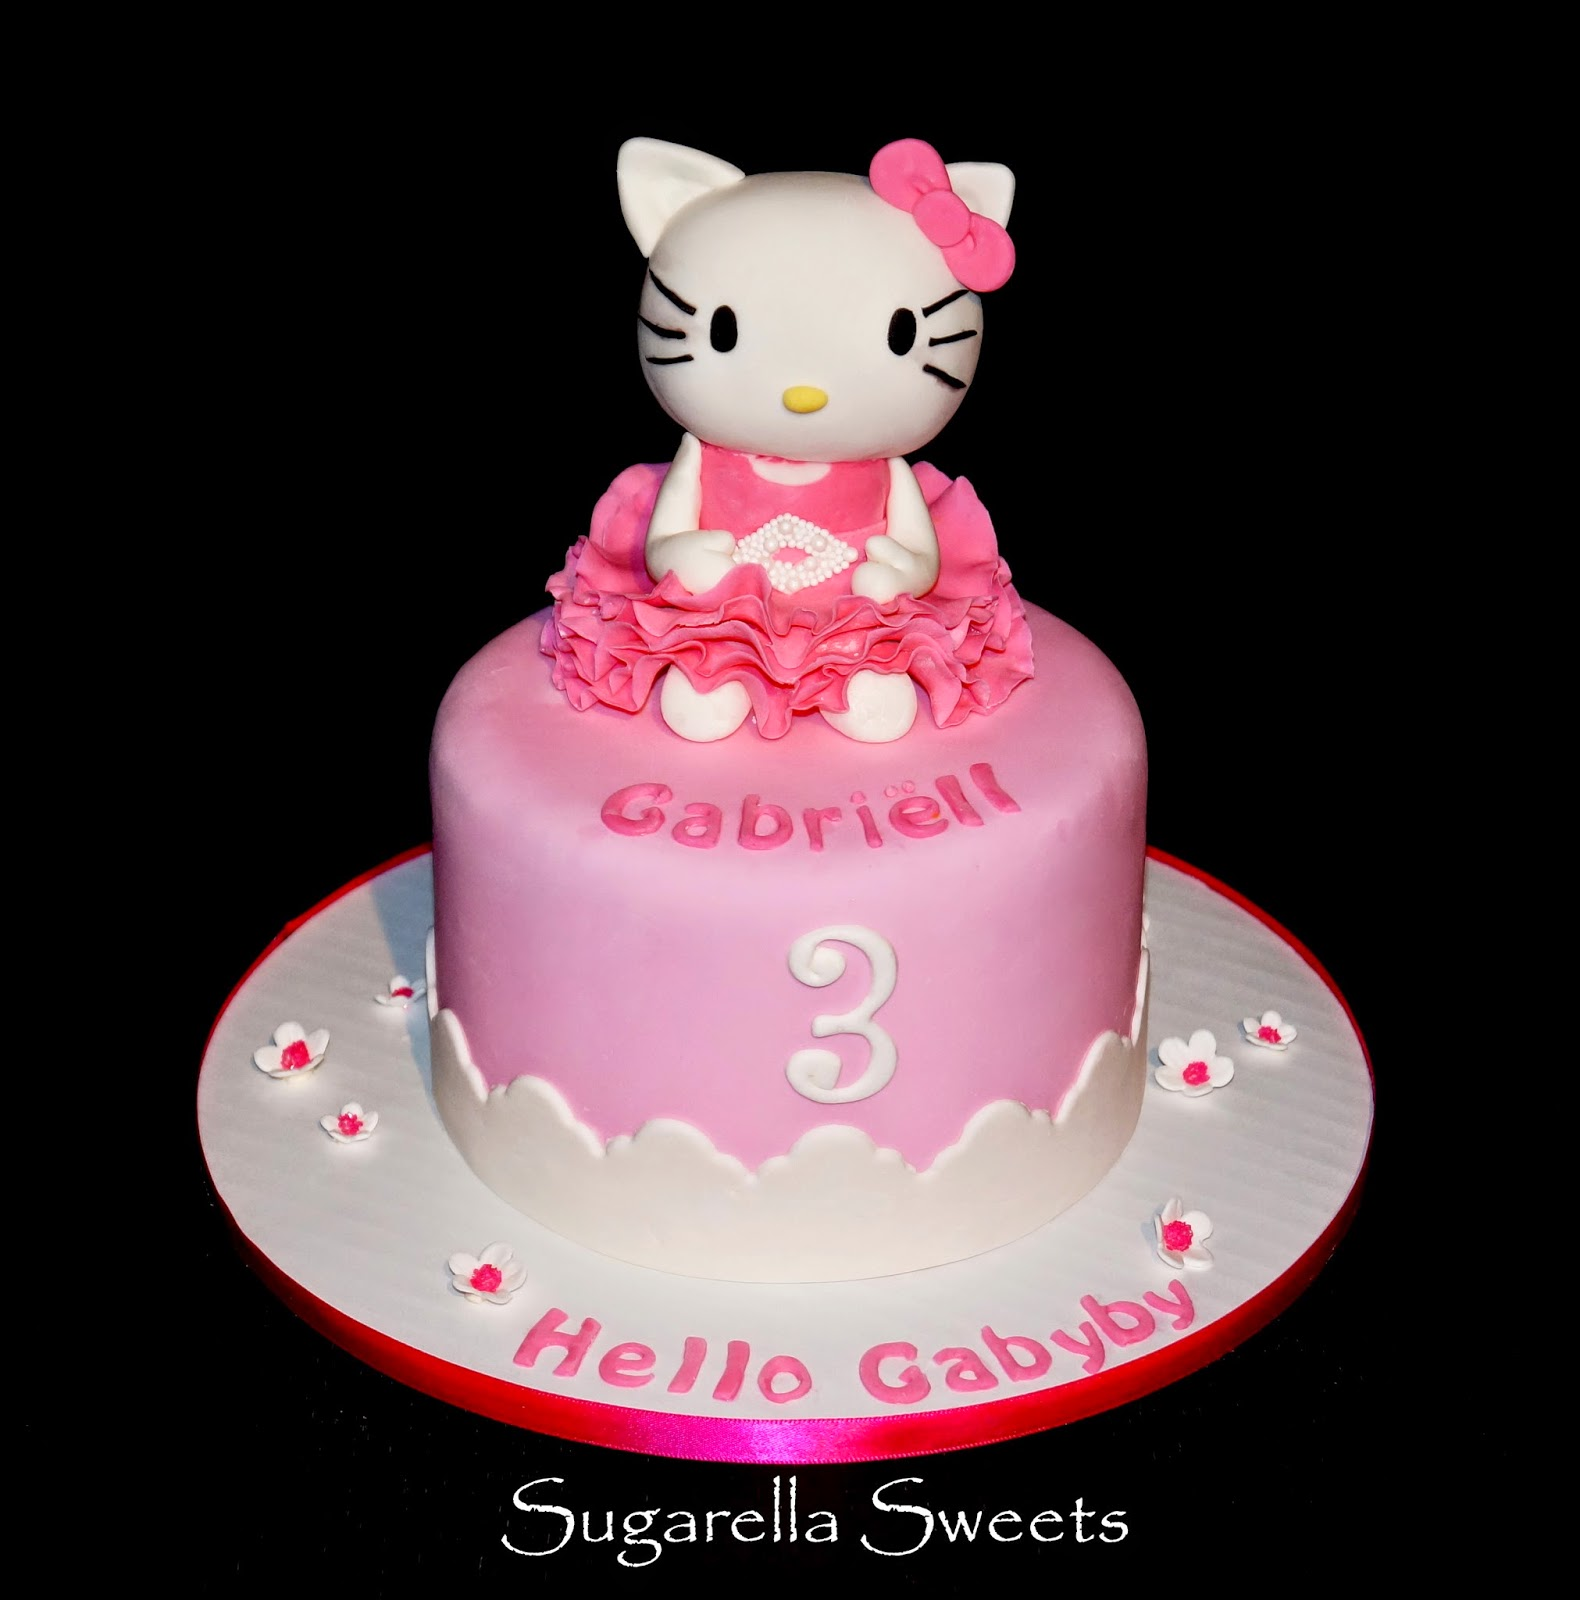 http://sugarellasweetshowto.blogspot.ca/2015/01/how-to-make-hello-kitty-cake-topper.html